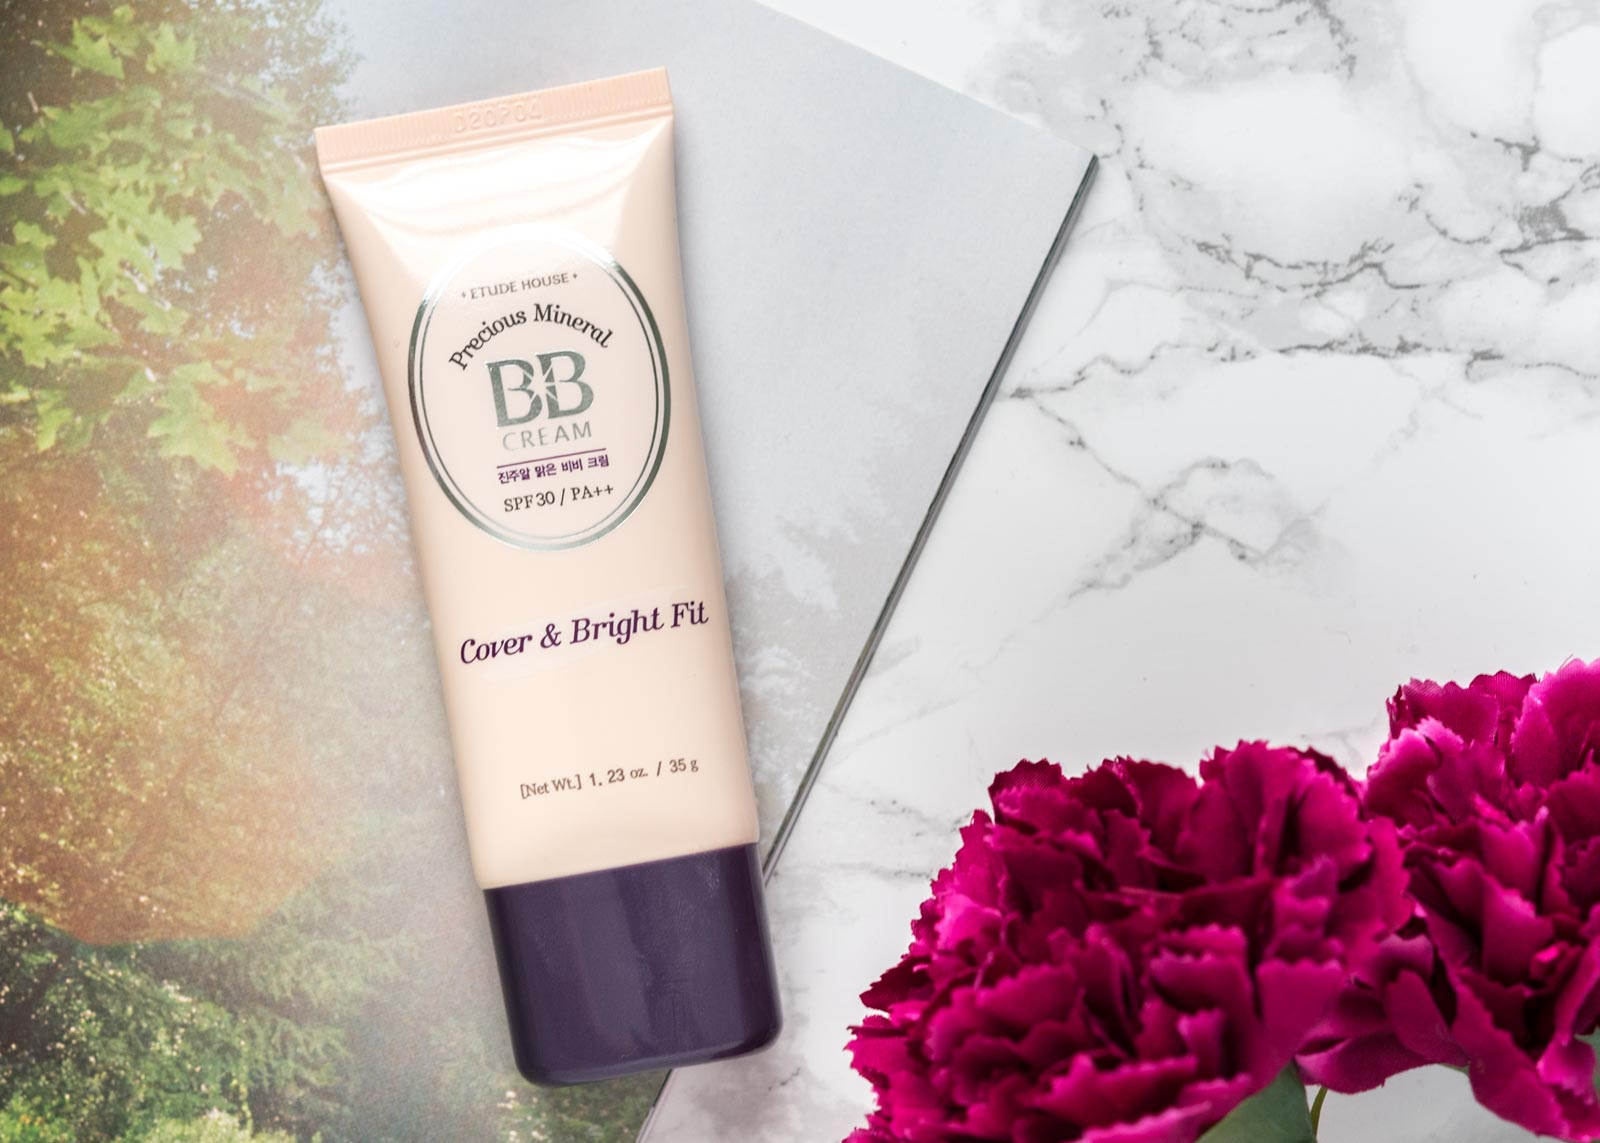 Etude House Bb Cream Cover Bright Fit Review Swatches Photos Jessoshii